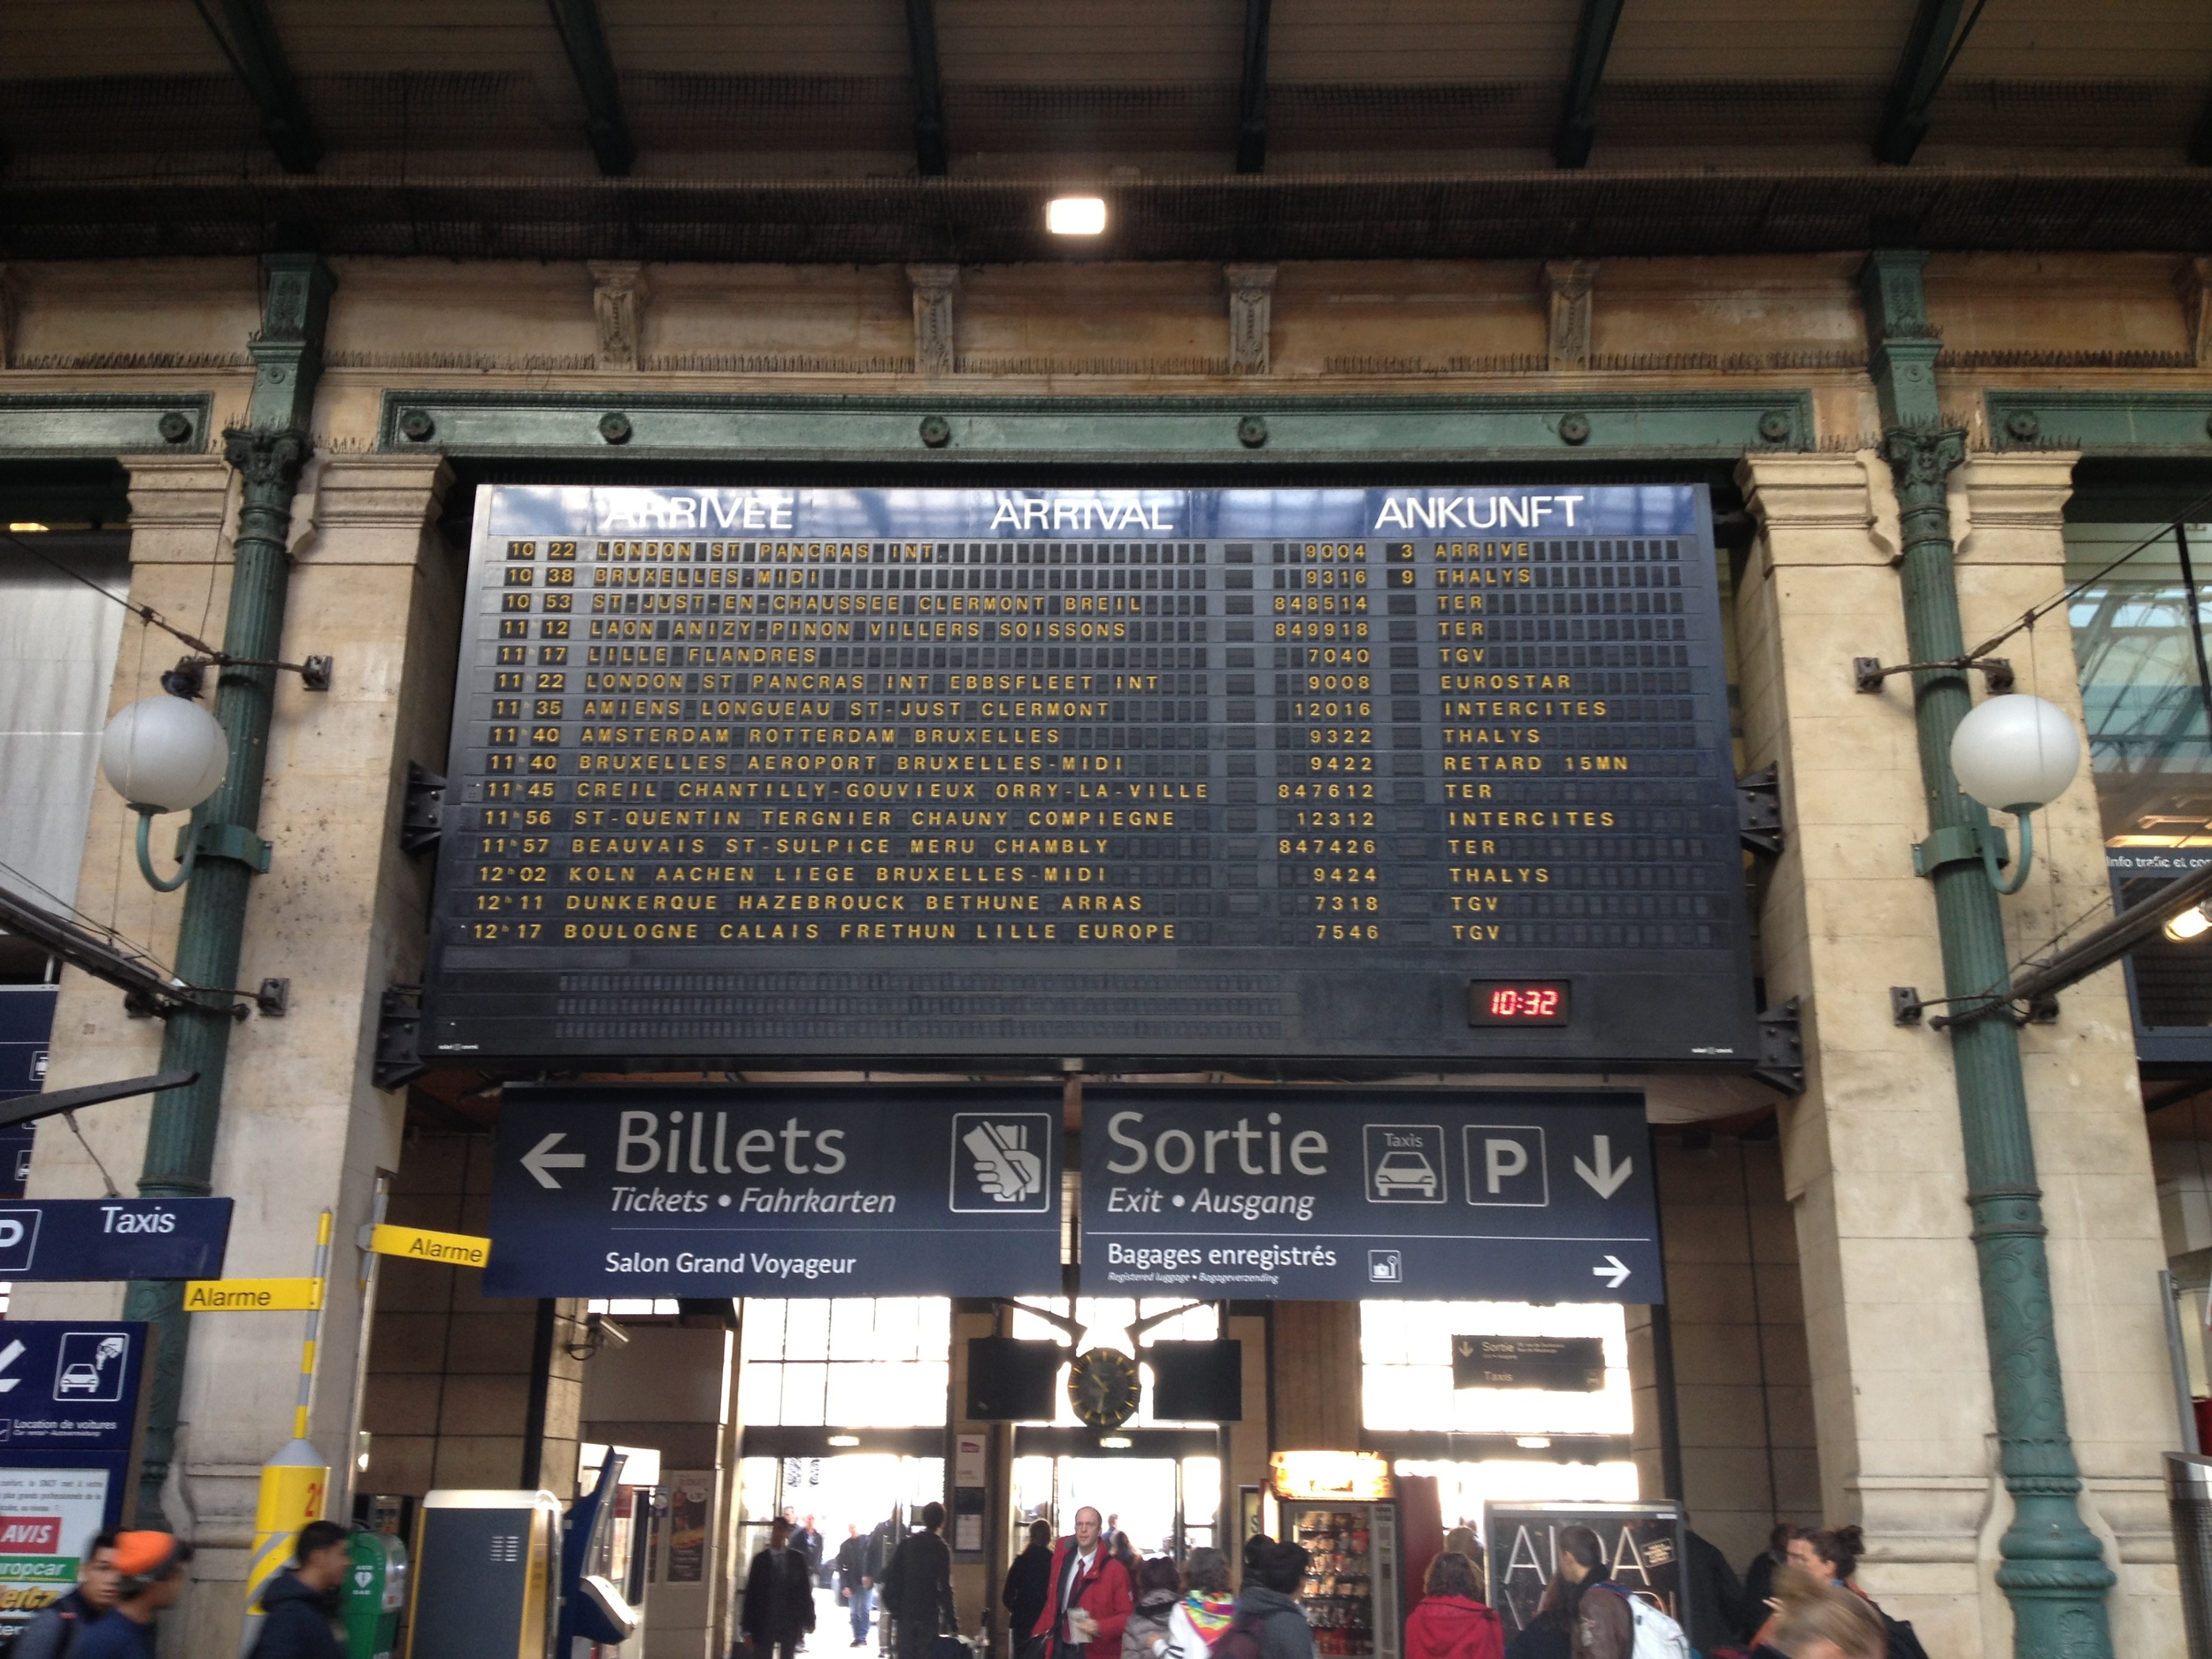 arriving in paris' train station from london.